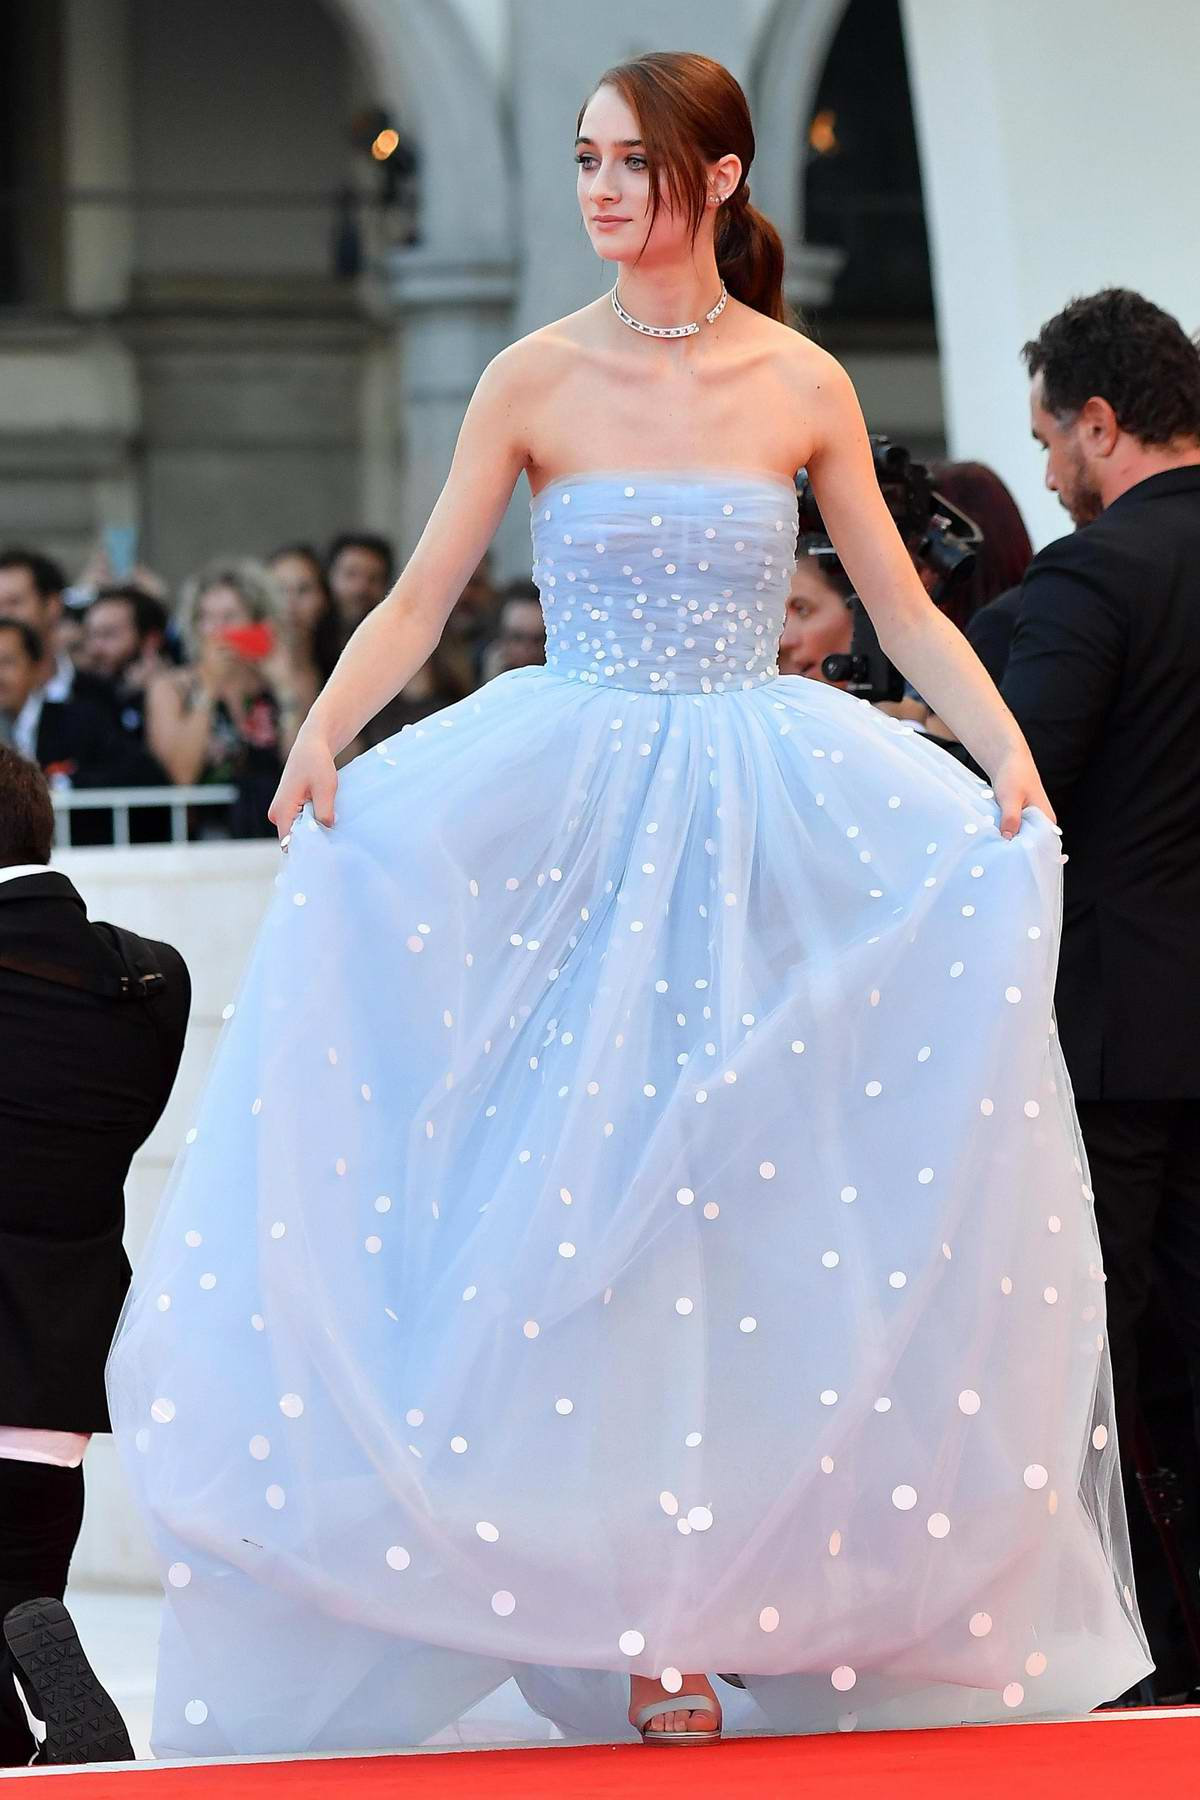 Raffey Cassidy attends 'Vox Lux' premiere during 75th Venice Film Festival in Venice, Italy